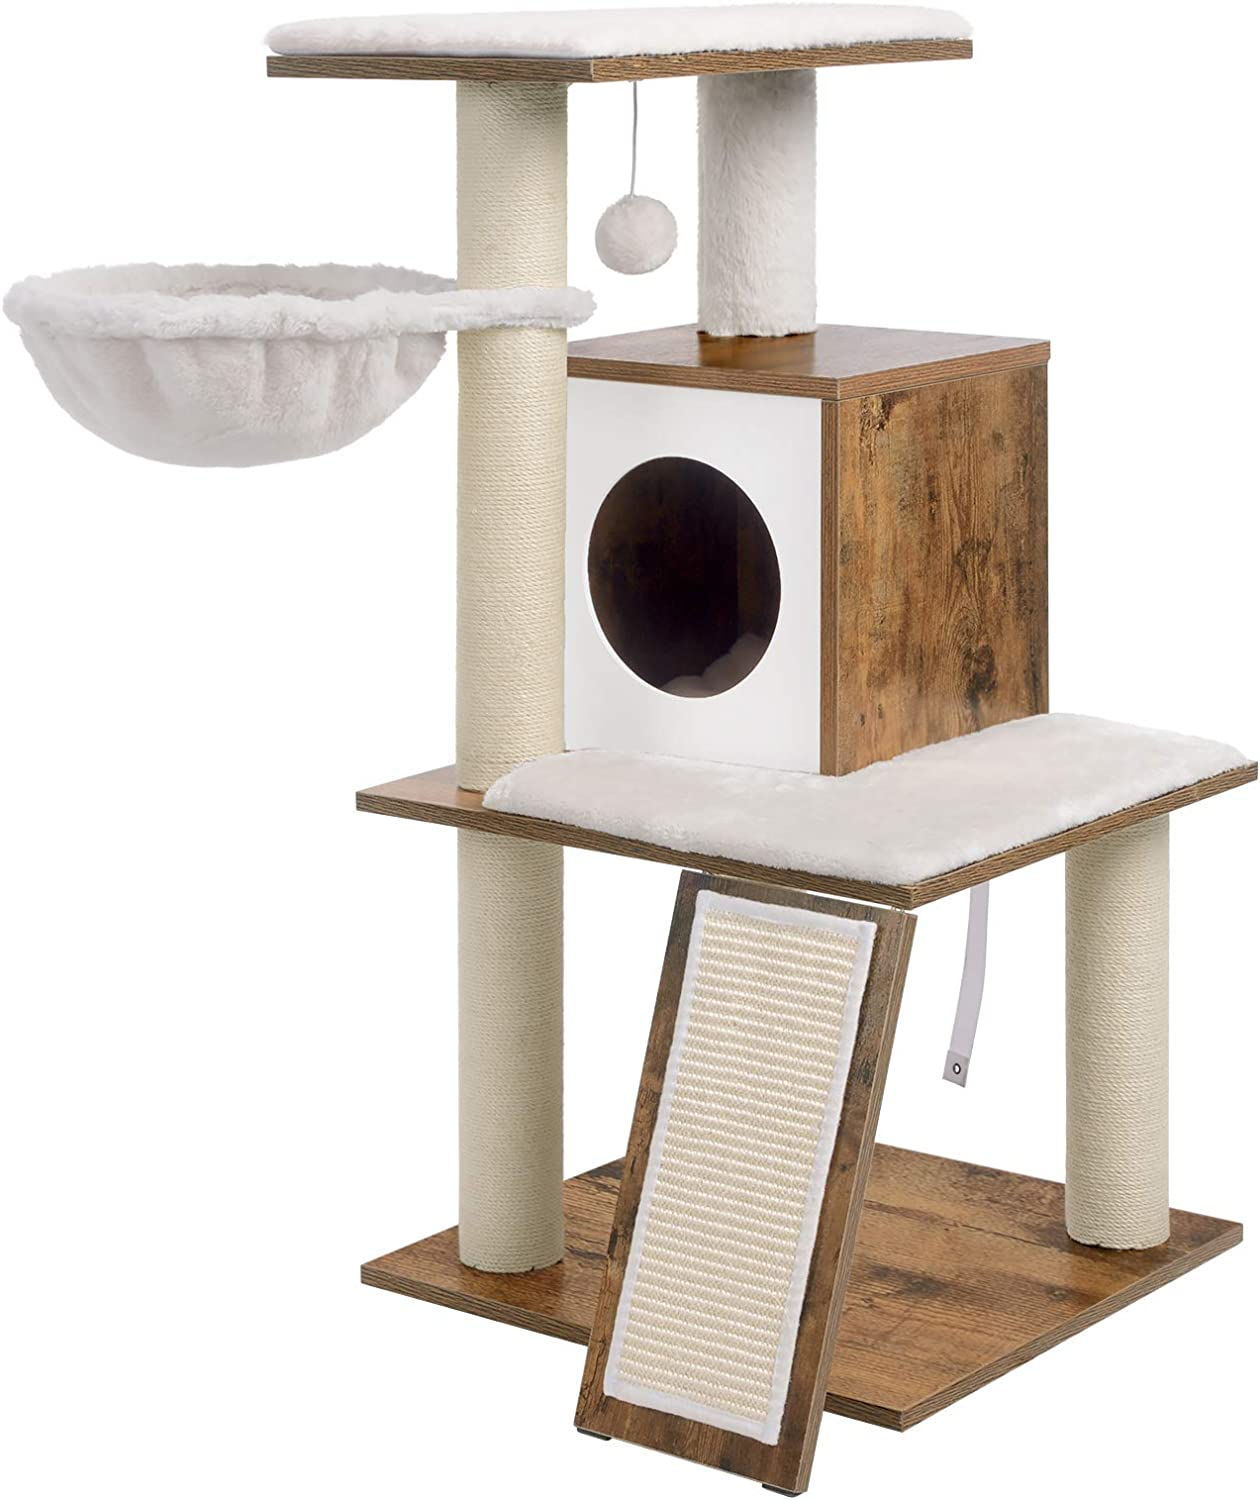 Amazon Com Feandrea Cat Tree Modern Cat Tower Wood Cat Condo Furniture With Scratching Posts For Large Small Cats 37 8 Inches Walnut Color Upct071h01 Pet Supplies